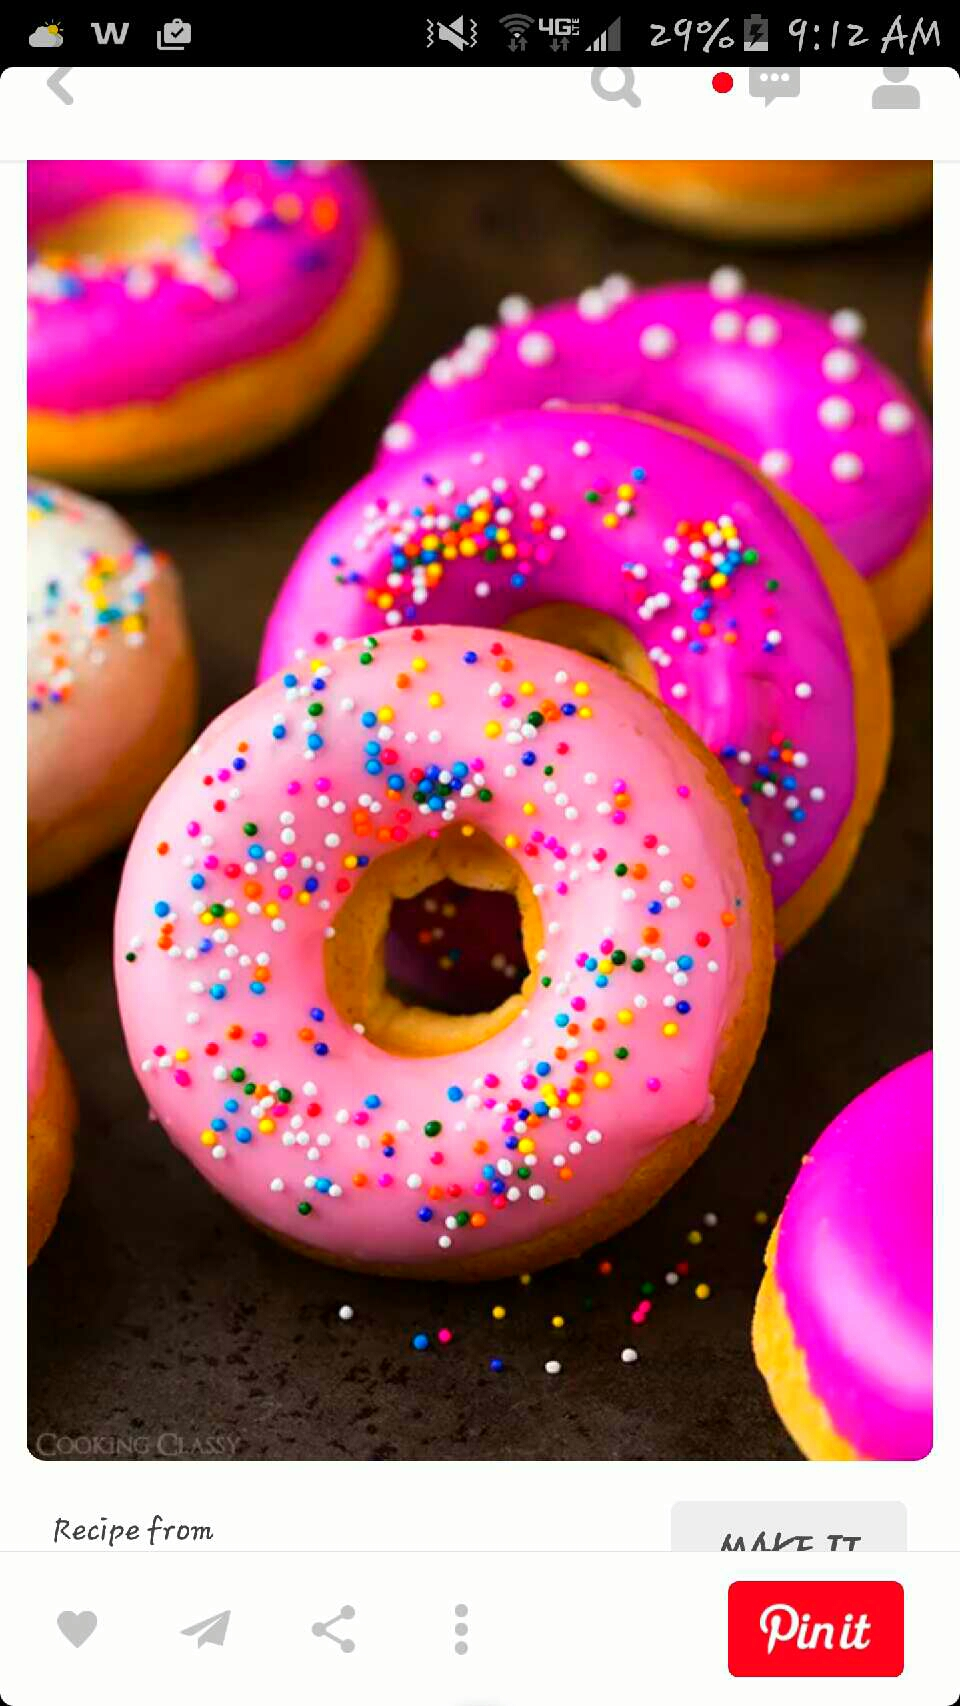 what you will need for the  doughnut  2 2/3 cups of unbleached flour  1 1/2 tsp baking powder 1/4 tsp baking soda  3/4 tsp salt 1/4 cup melted butter  1/4 cup vegetable oil  3/4 cup granulated sugar  seeds of 1 vanilla bean  2 large eggs 2 tsp vanilla extract  1 cup milk